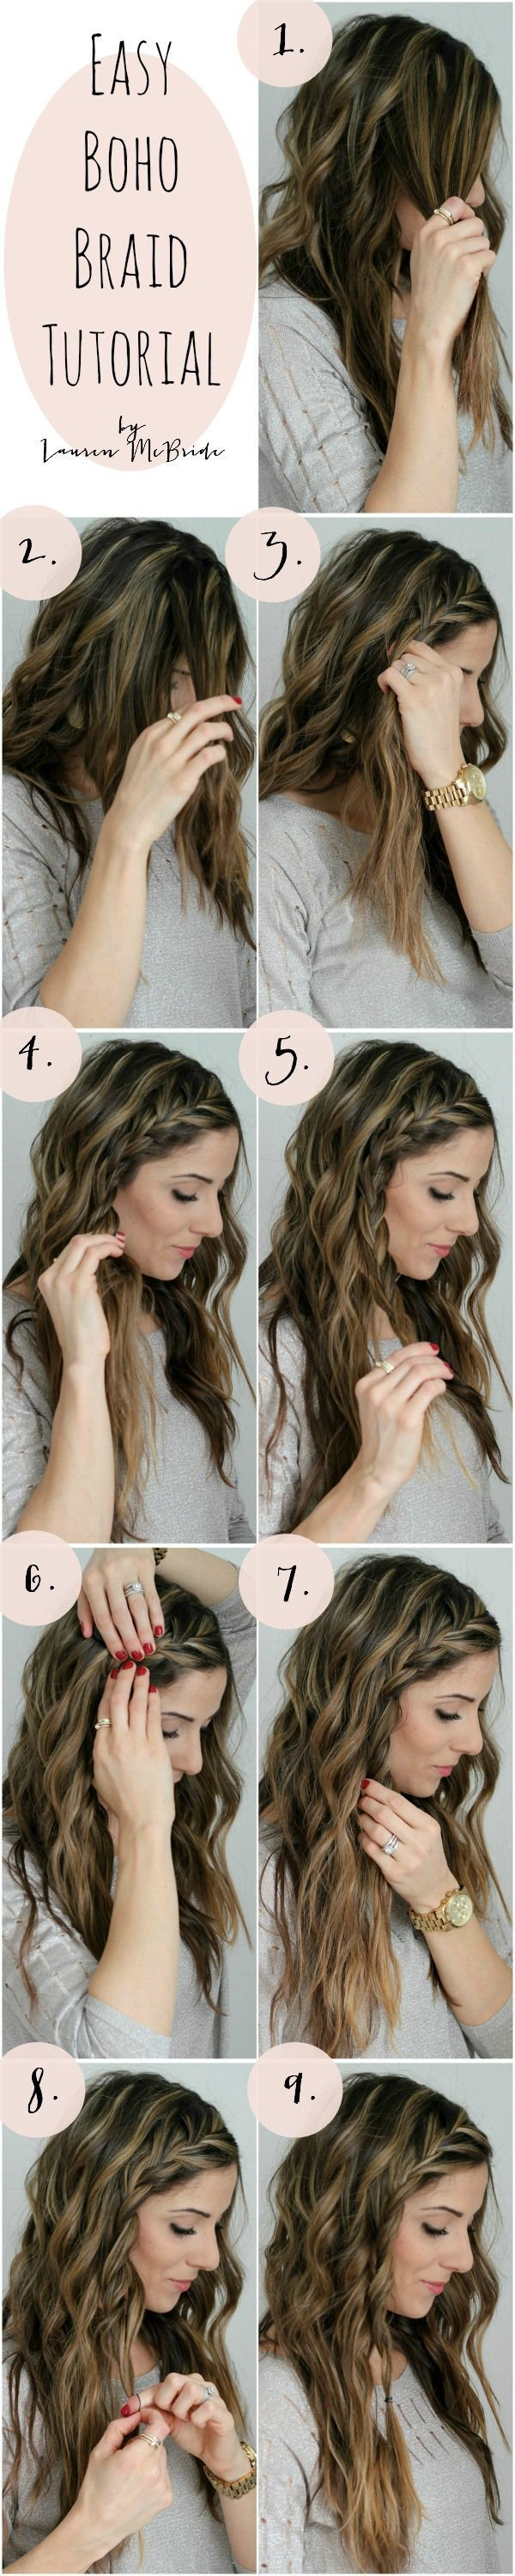 Easy boho braid tutorial braid tutorials easy hairstyles and boho